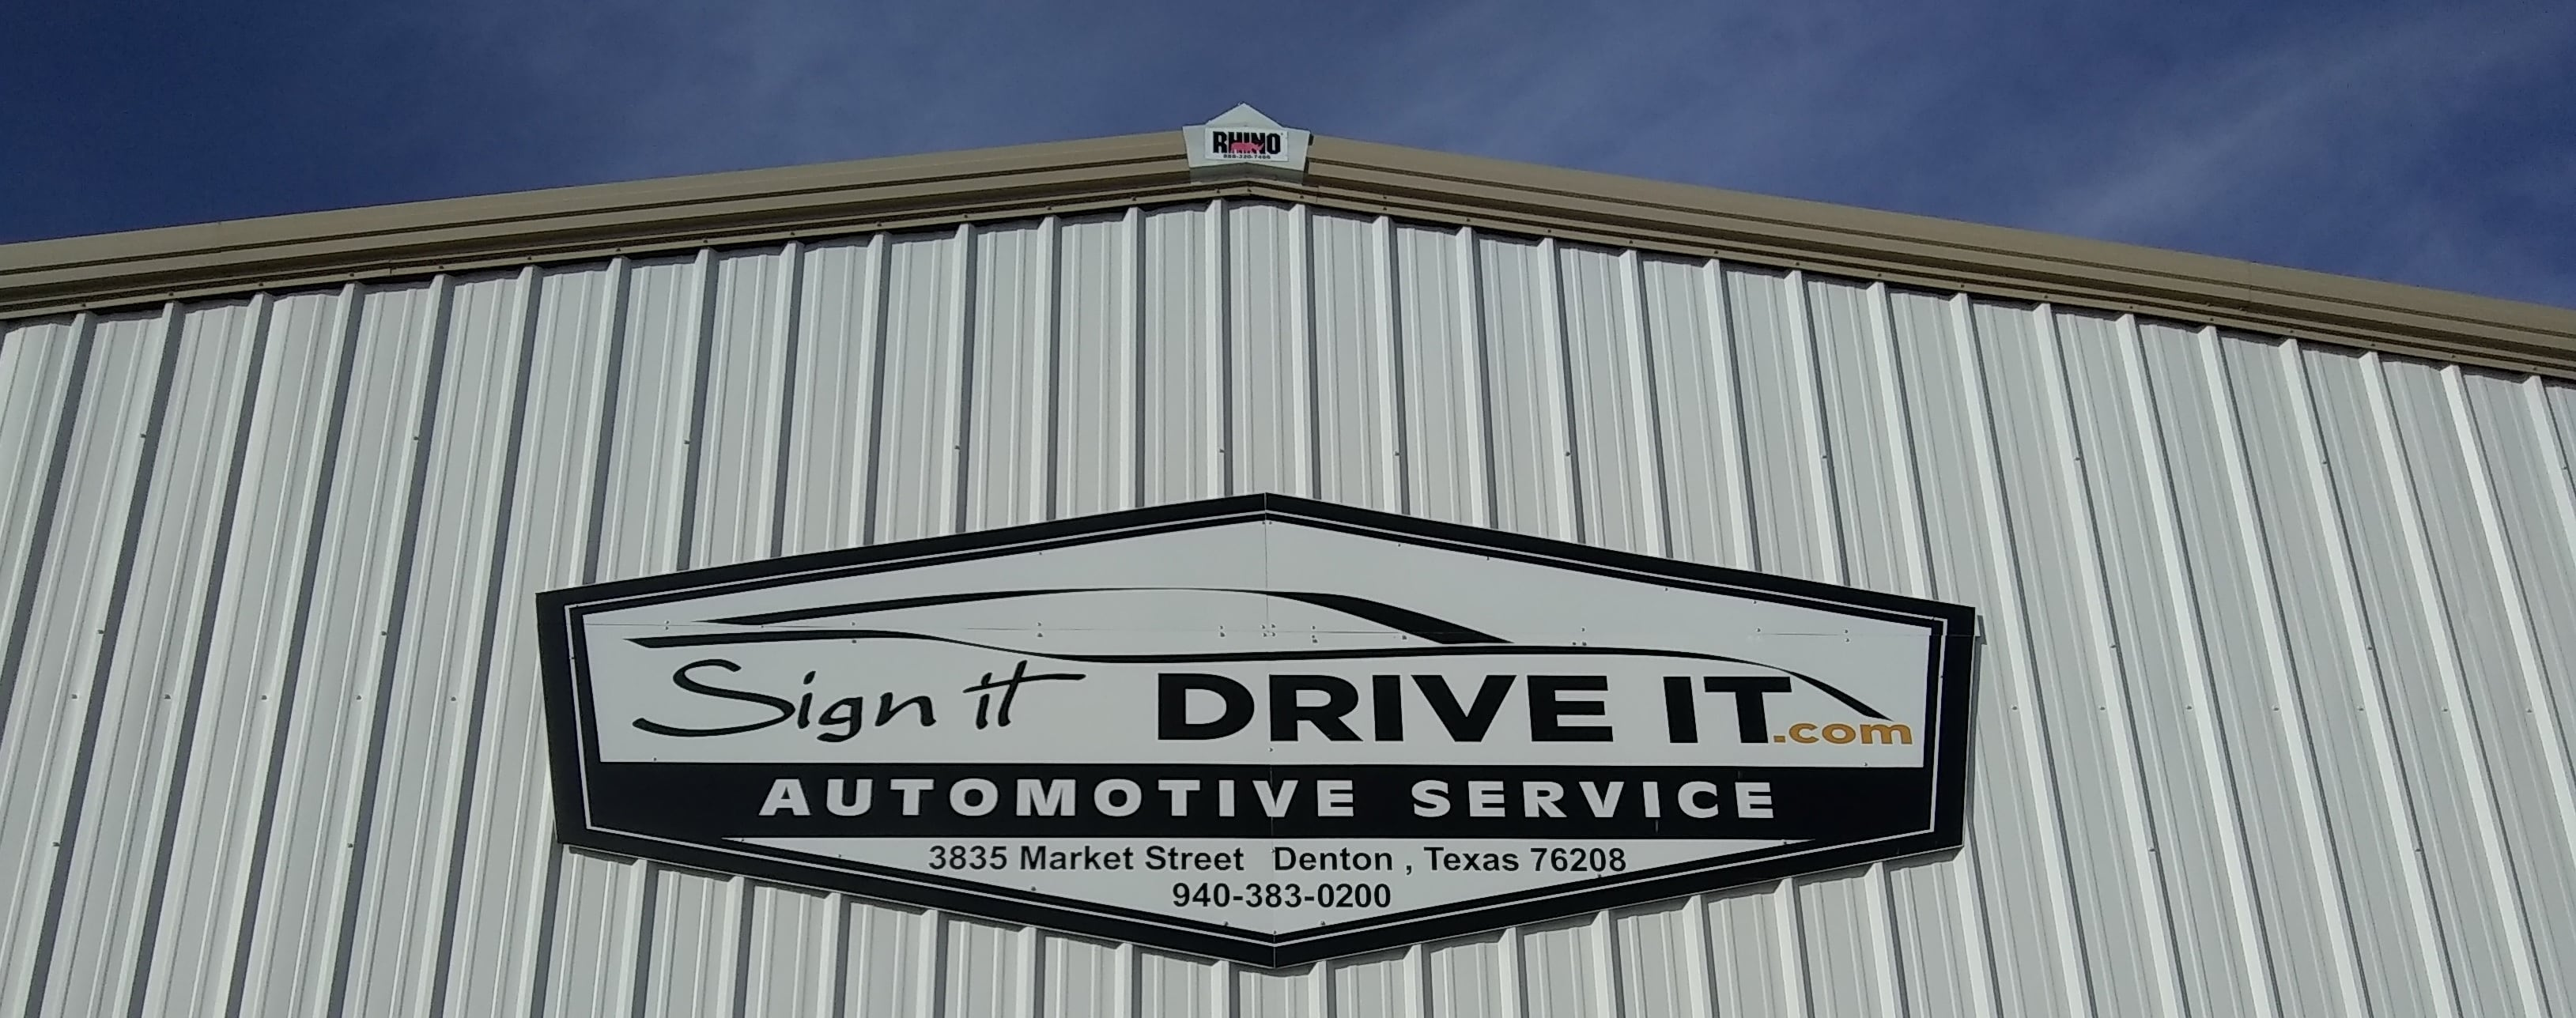 Automotive Sales and Collision Repair Denton TX Sign It Drive It